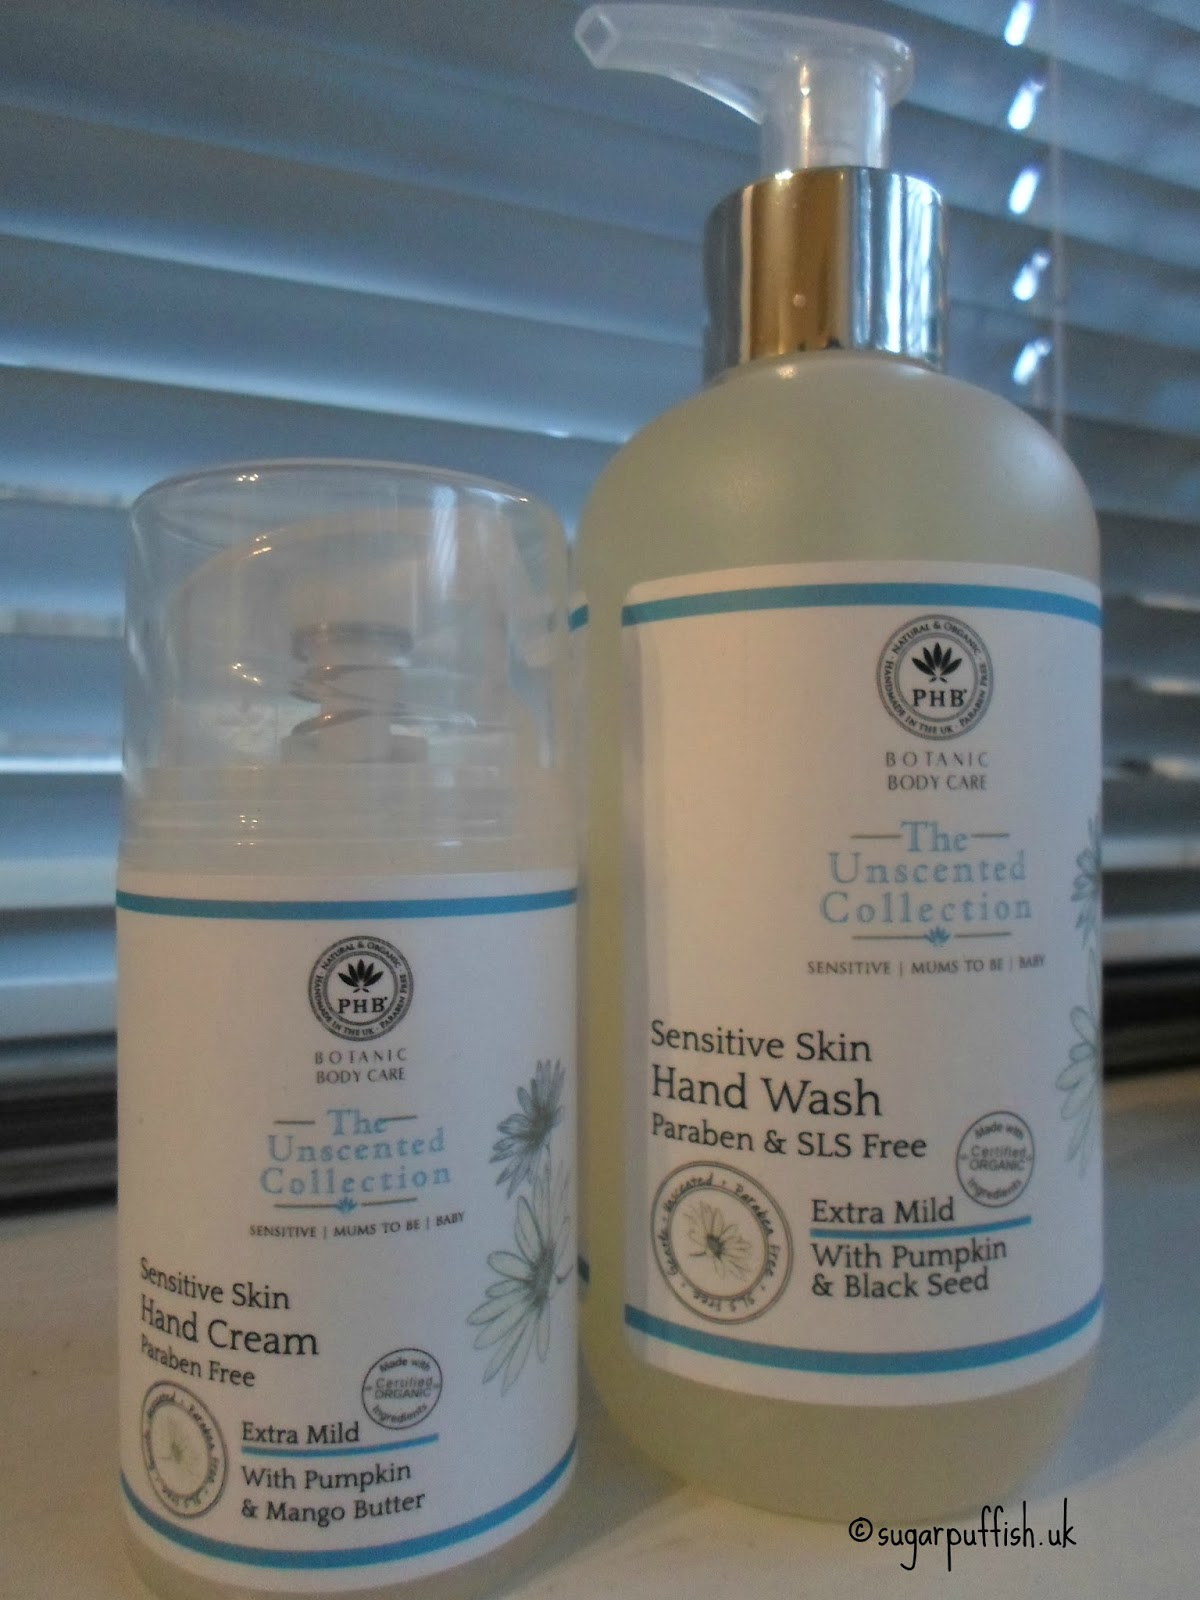 PHB Ethical Beauty The Unscented Collection Hand Cream & Hand Wash